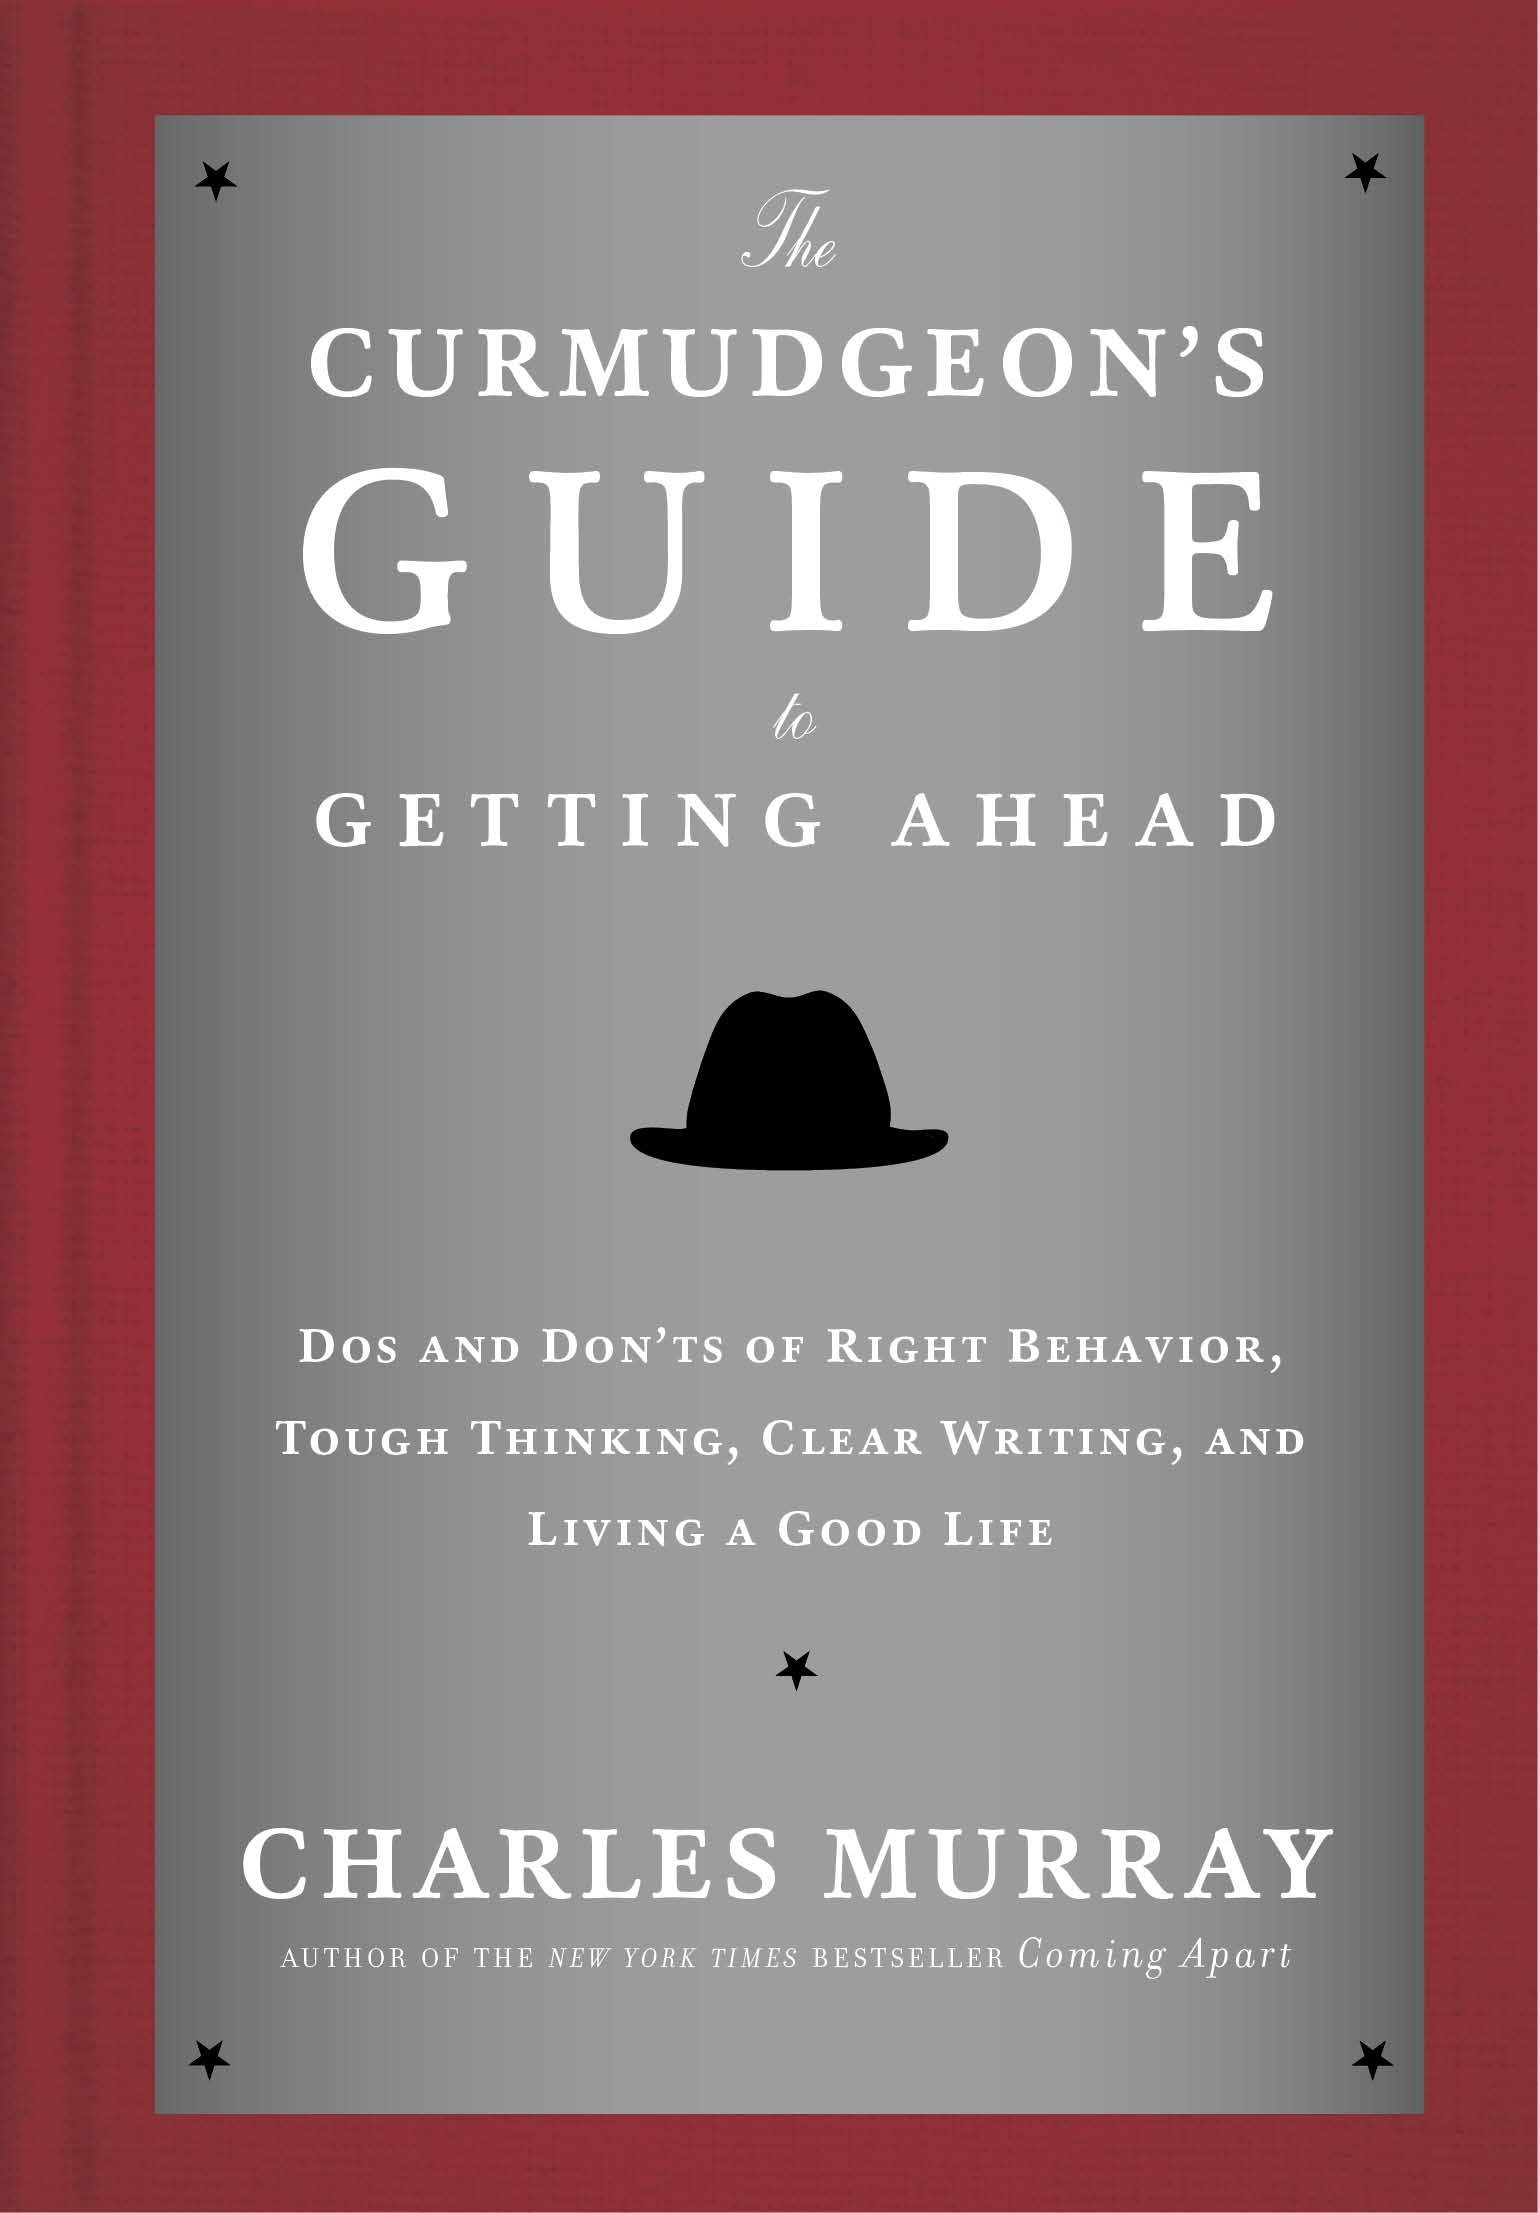 The Curmudgeon's Guide to Getting Ahead: Dos and Don'ts of Right Behavior, Tough Thinking, Clear Writing, and Living a…